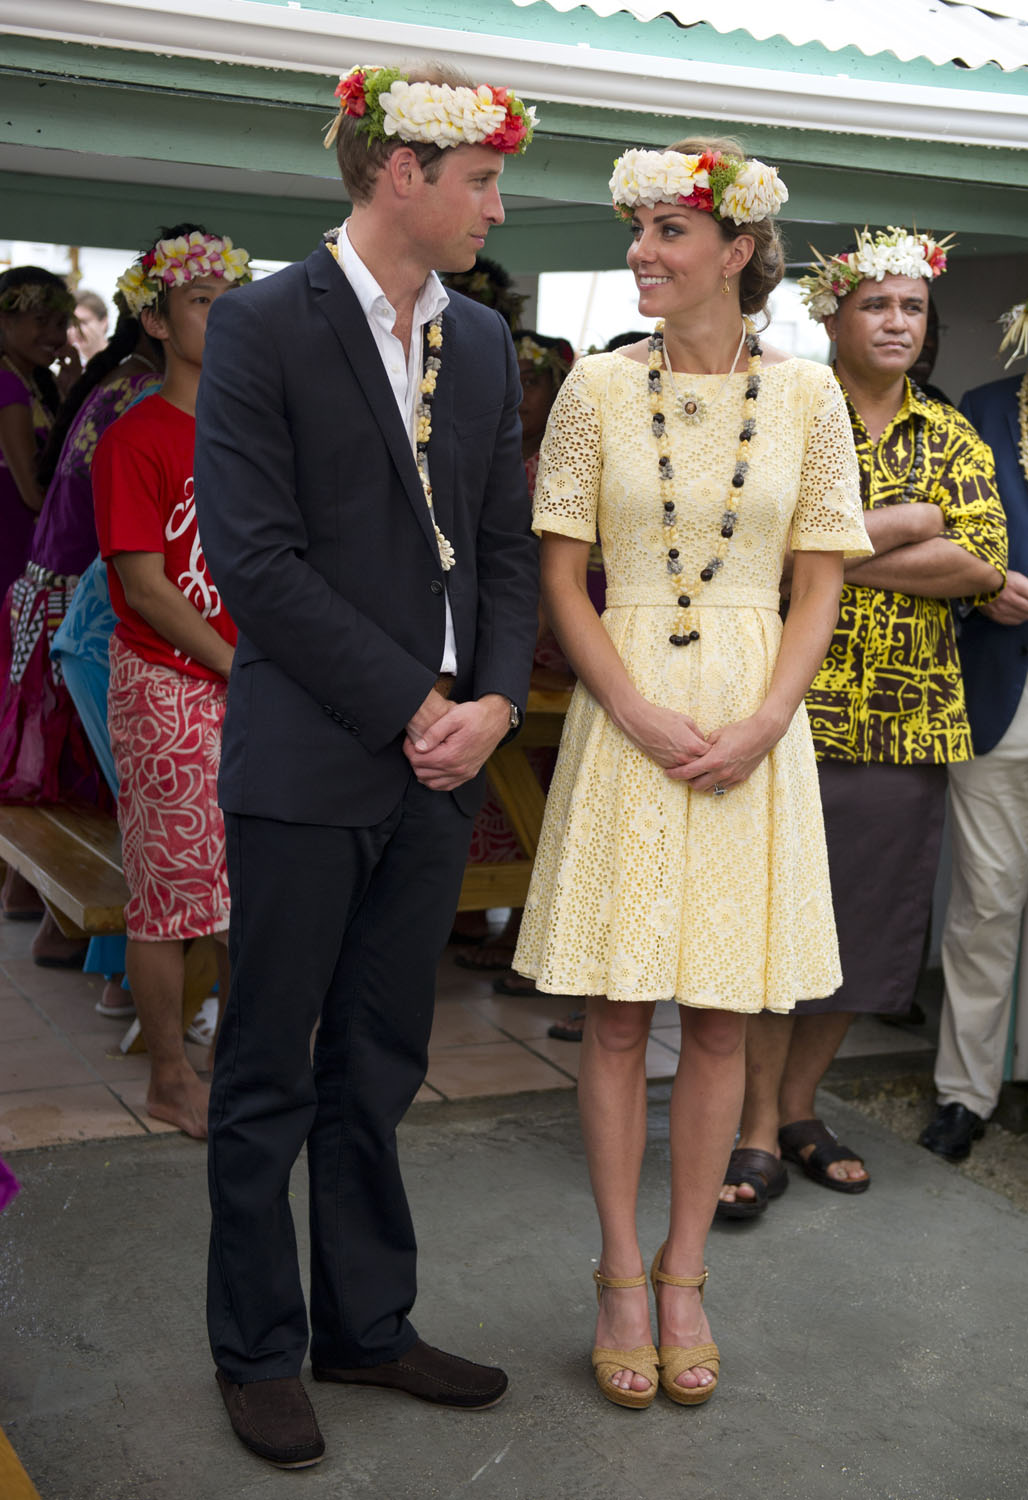 <strong>Lemon Yellow</strong>Catherine, Duchess of Cambridge and Prince William, Duke of Cambridge visit Nauti Primary School during the Royal couple's Diamond Jubilee tour of the Far East on September 18, 2012 in Funafuti, Tuvalu.